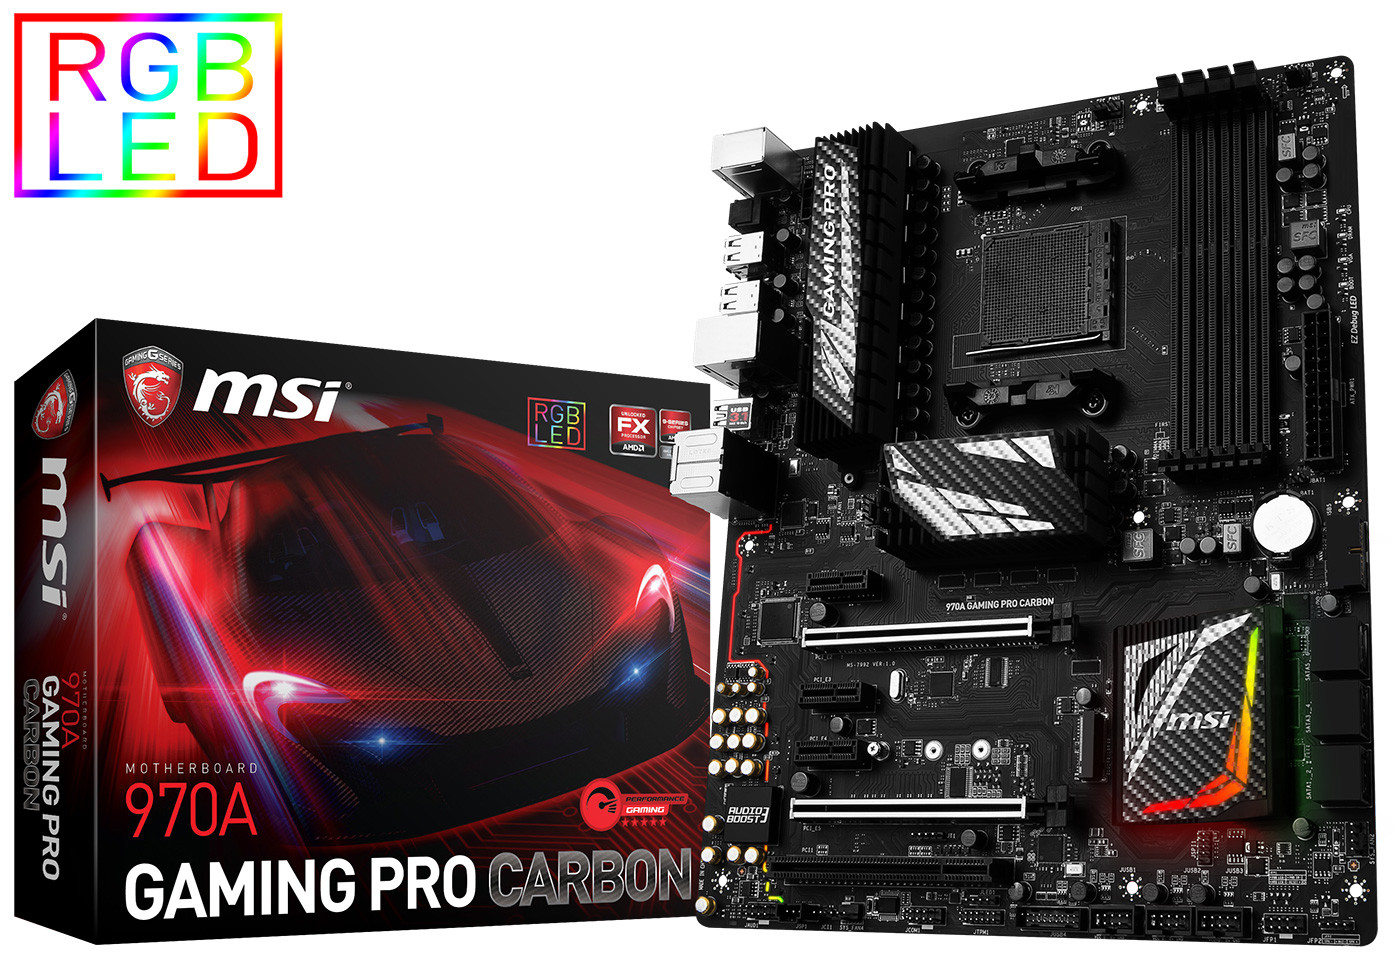 MSI 970A Gaming Pro